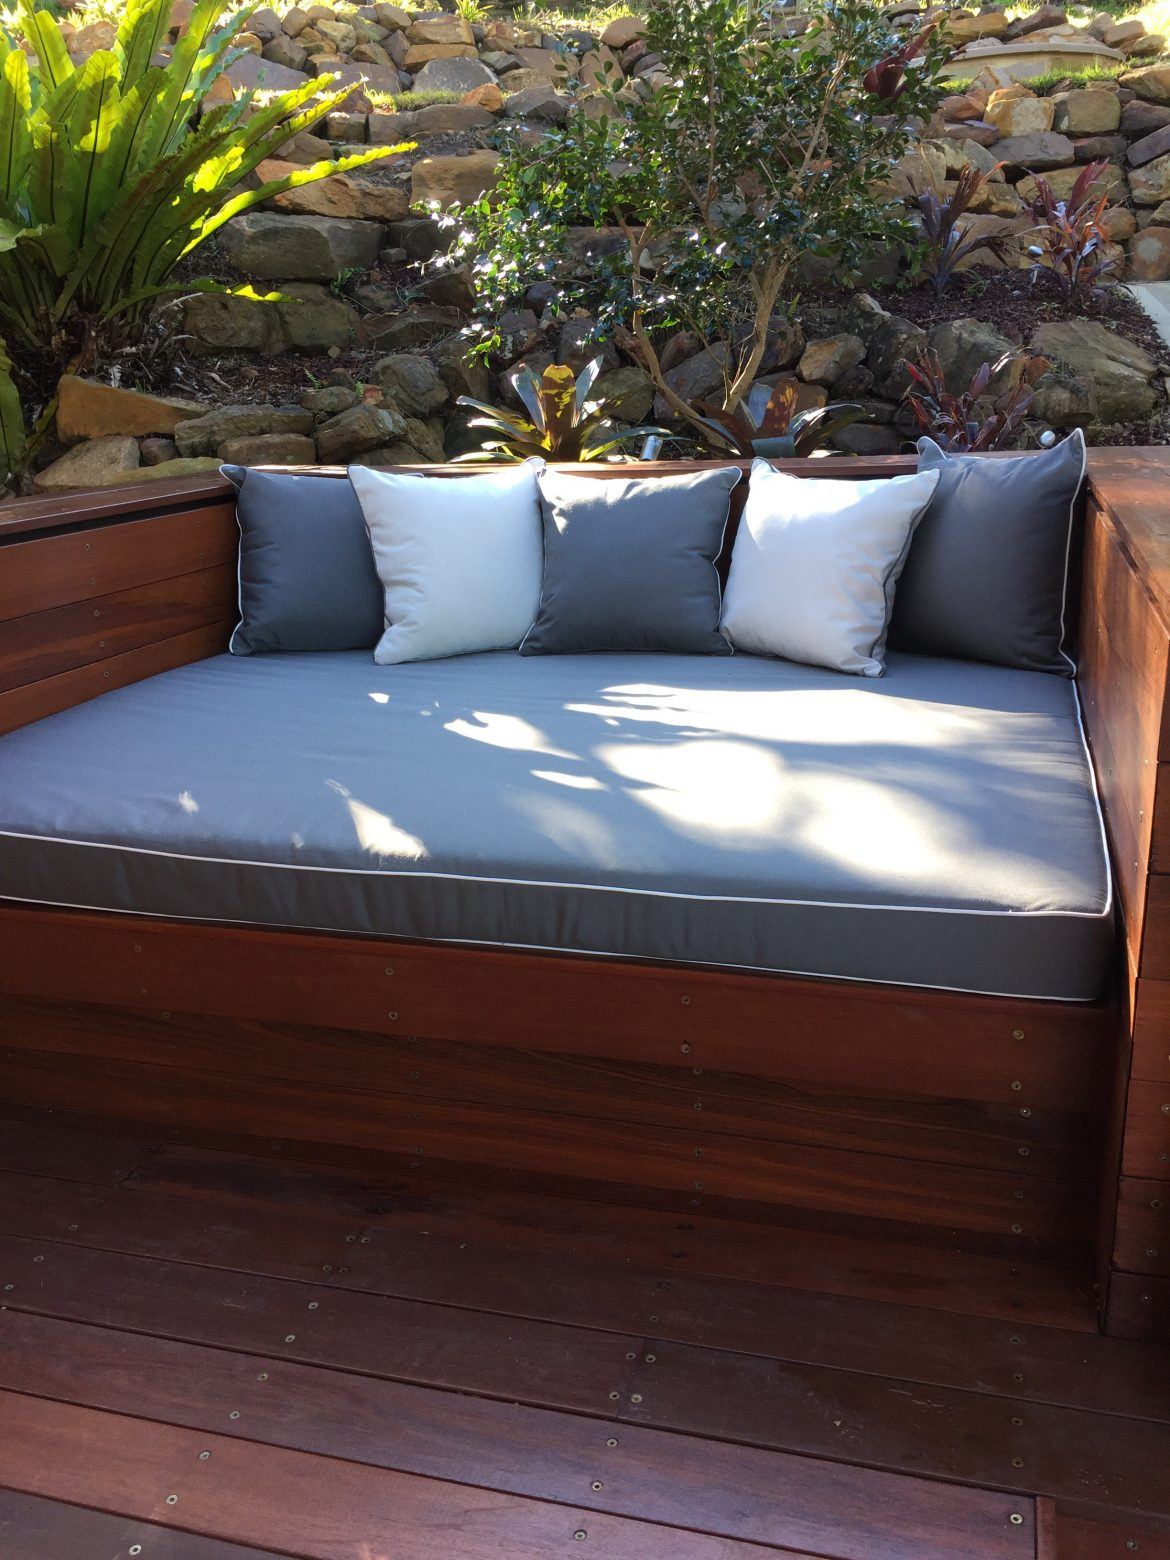 Tremendous What Is The Best Fabric For An Outdoor Bench Cushion Sydney Caraccident5 Cool Chair Designs And Ideas Caraccident5Info